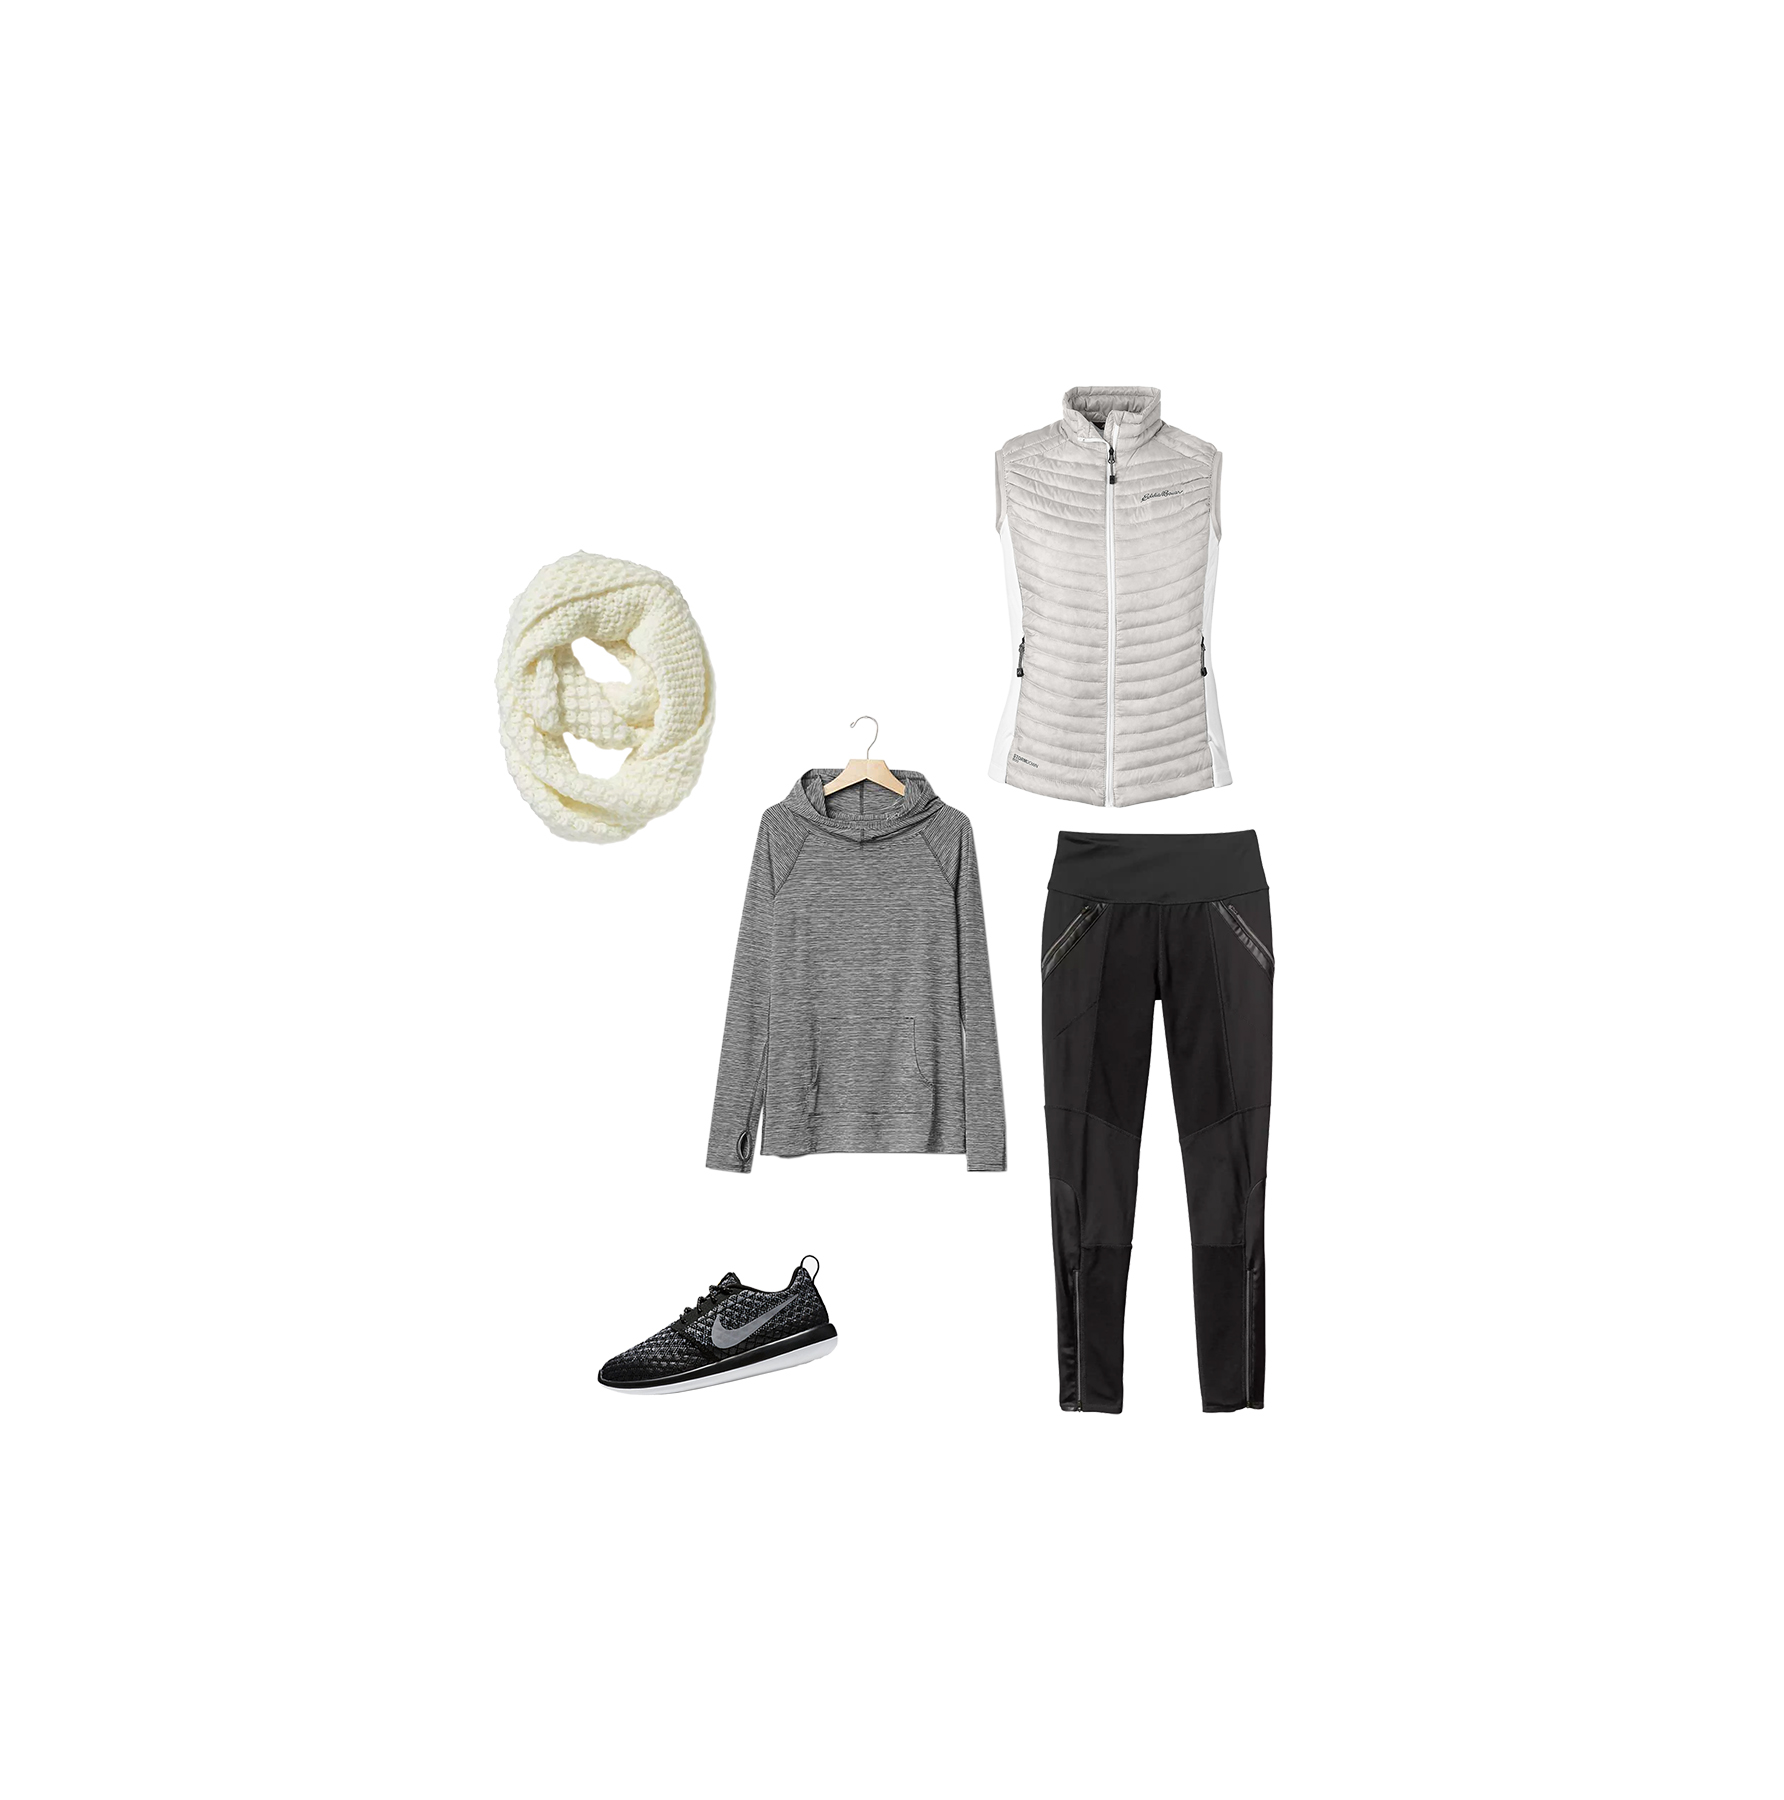 Athleisure leggings outfit